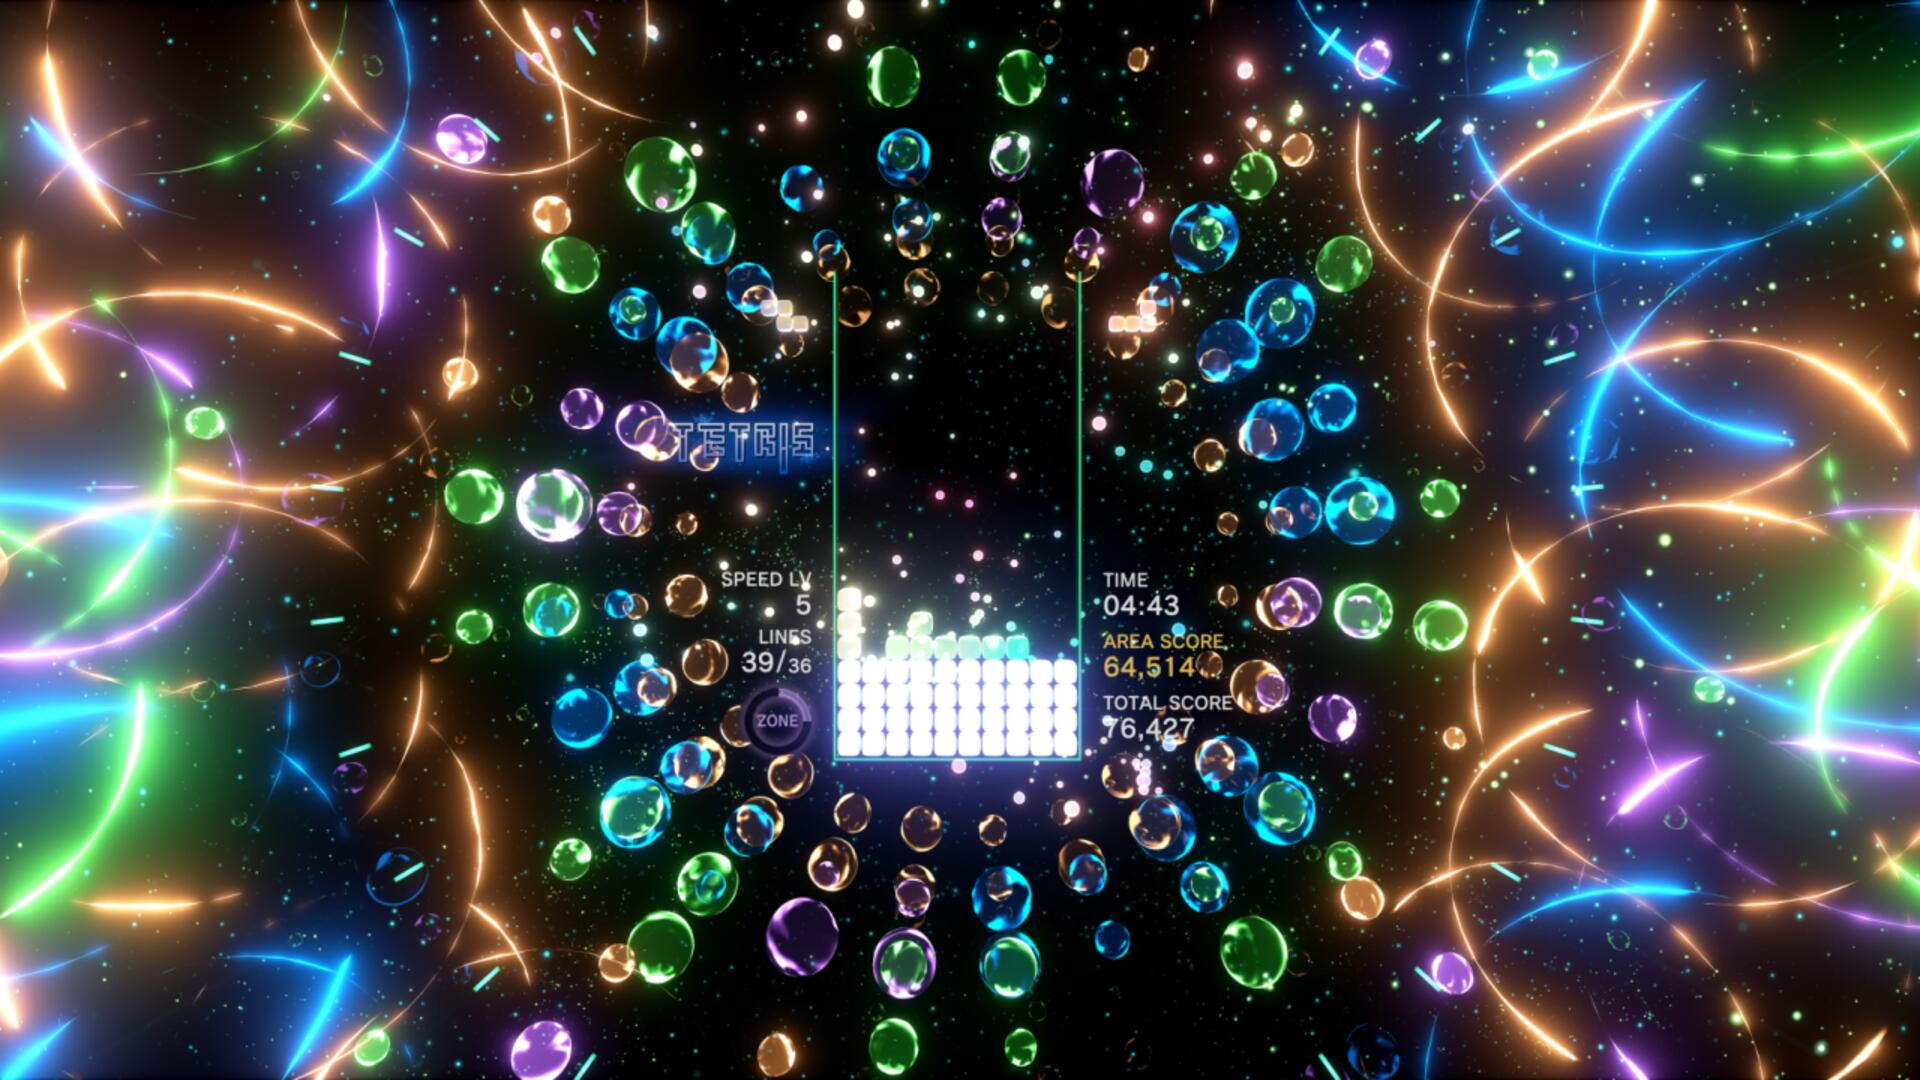 Tetris Effect Is Coming to PC With VR Support Next Week, Exclusive to Epic Games Store